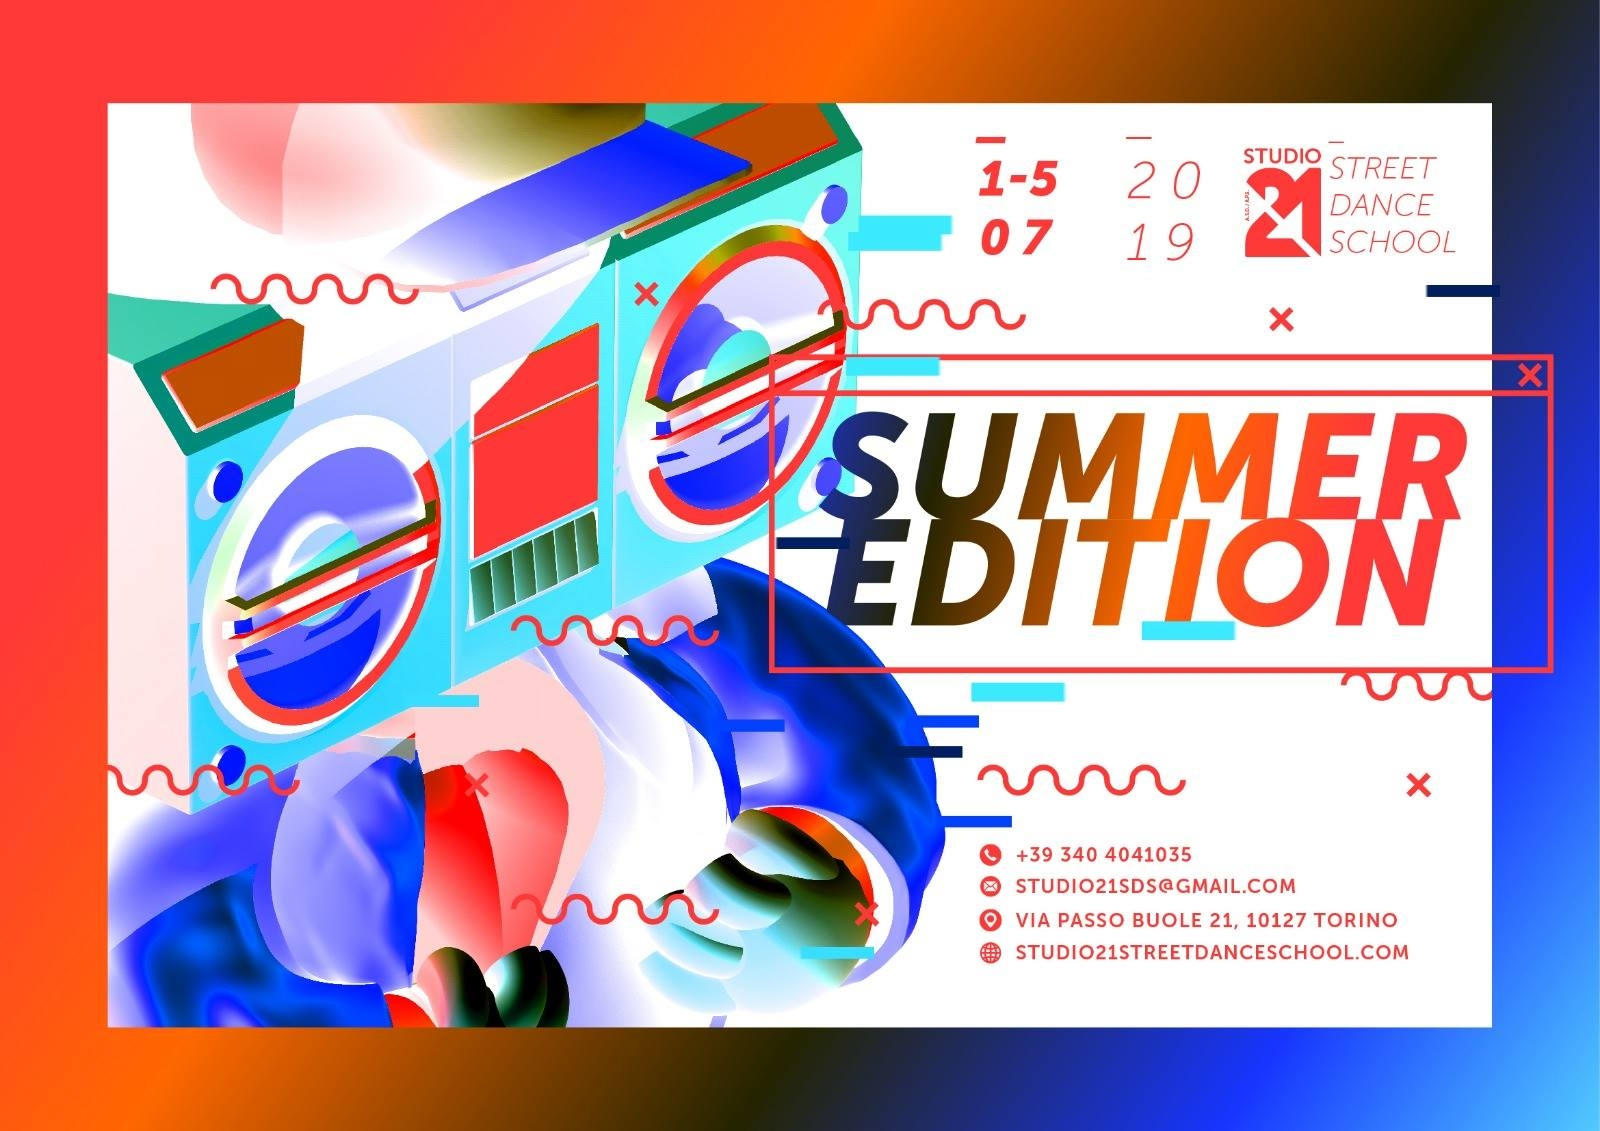 ST21 Summer edition 2019 poster